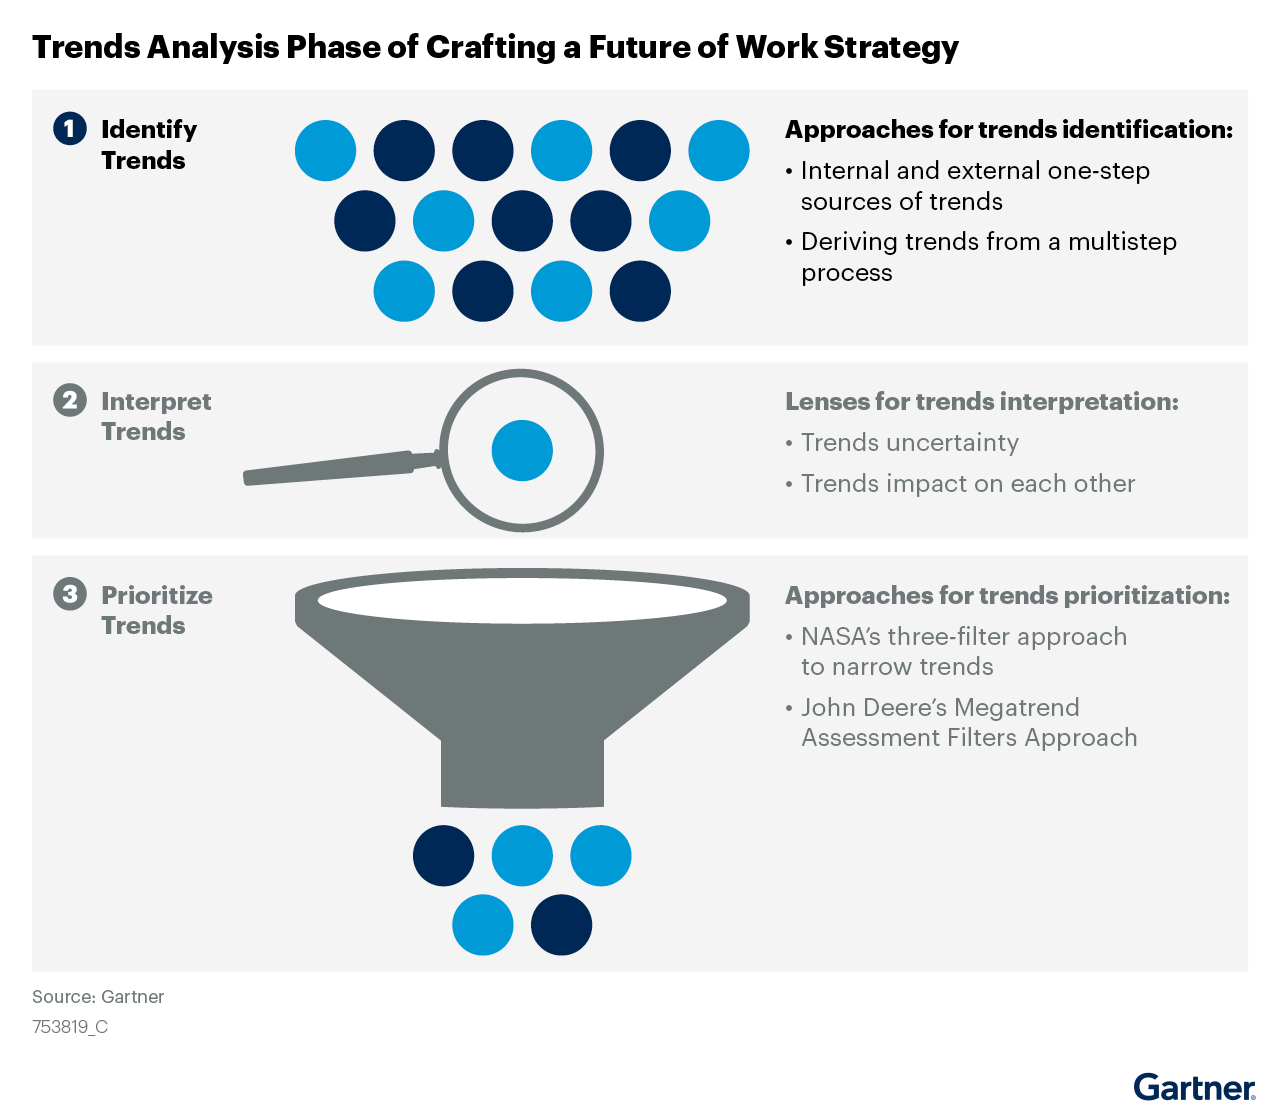 Figure 1. Trends Analysis Phase of Crafting a Future of Work Strategy